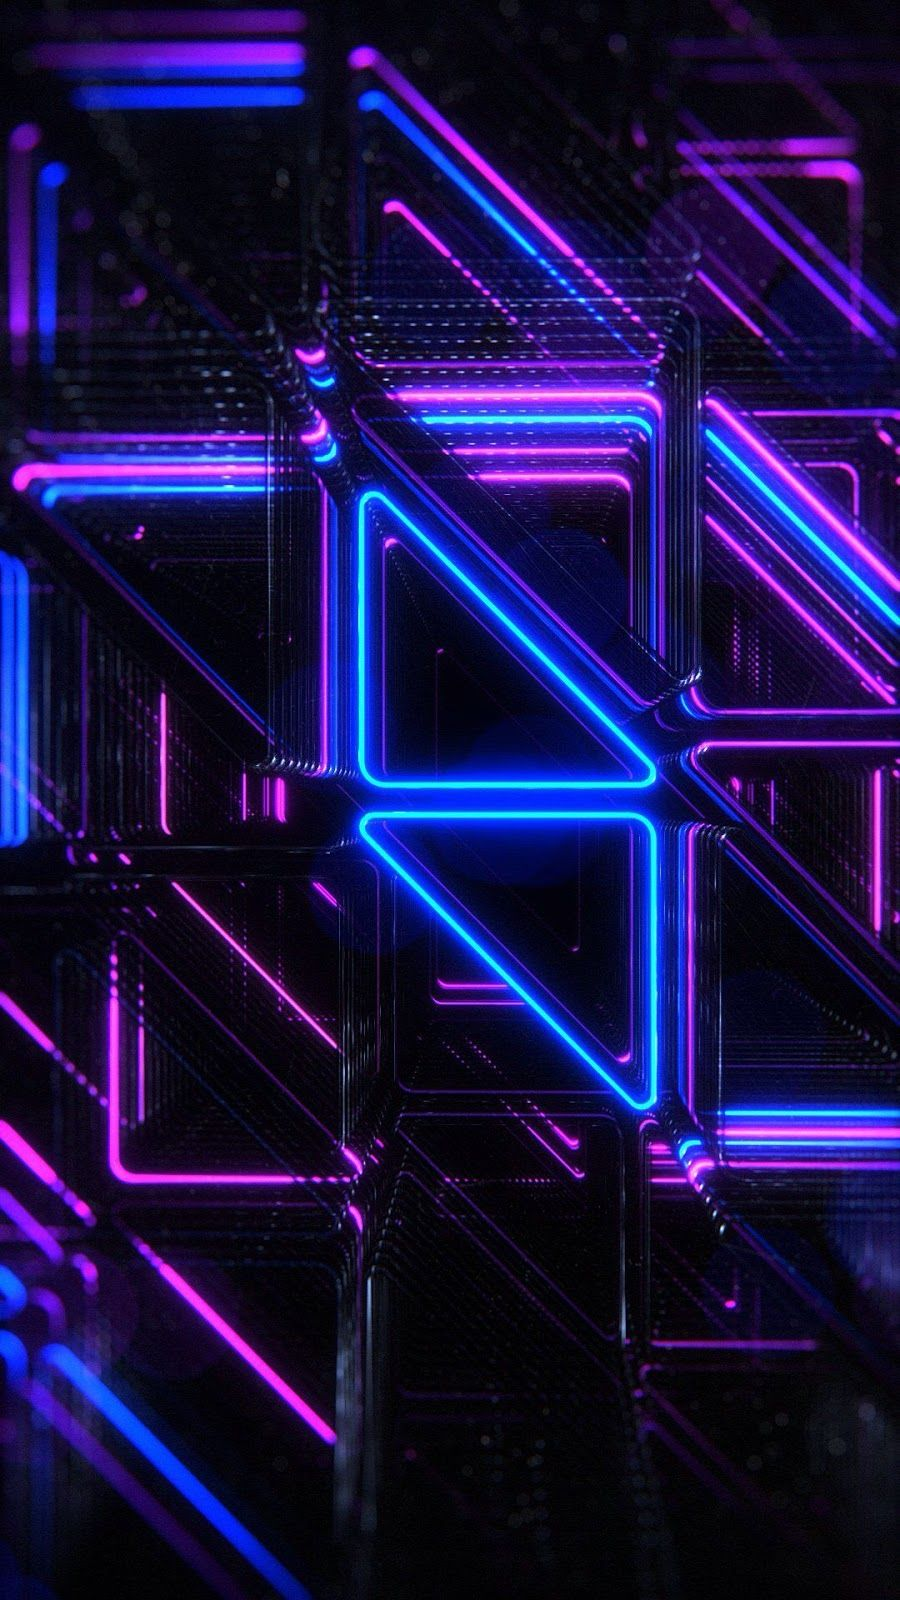 19+ Wallpaper Iphone Neon Edgy Purple Aesthetic Wallpaper Images